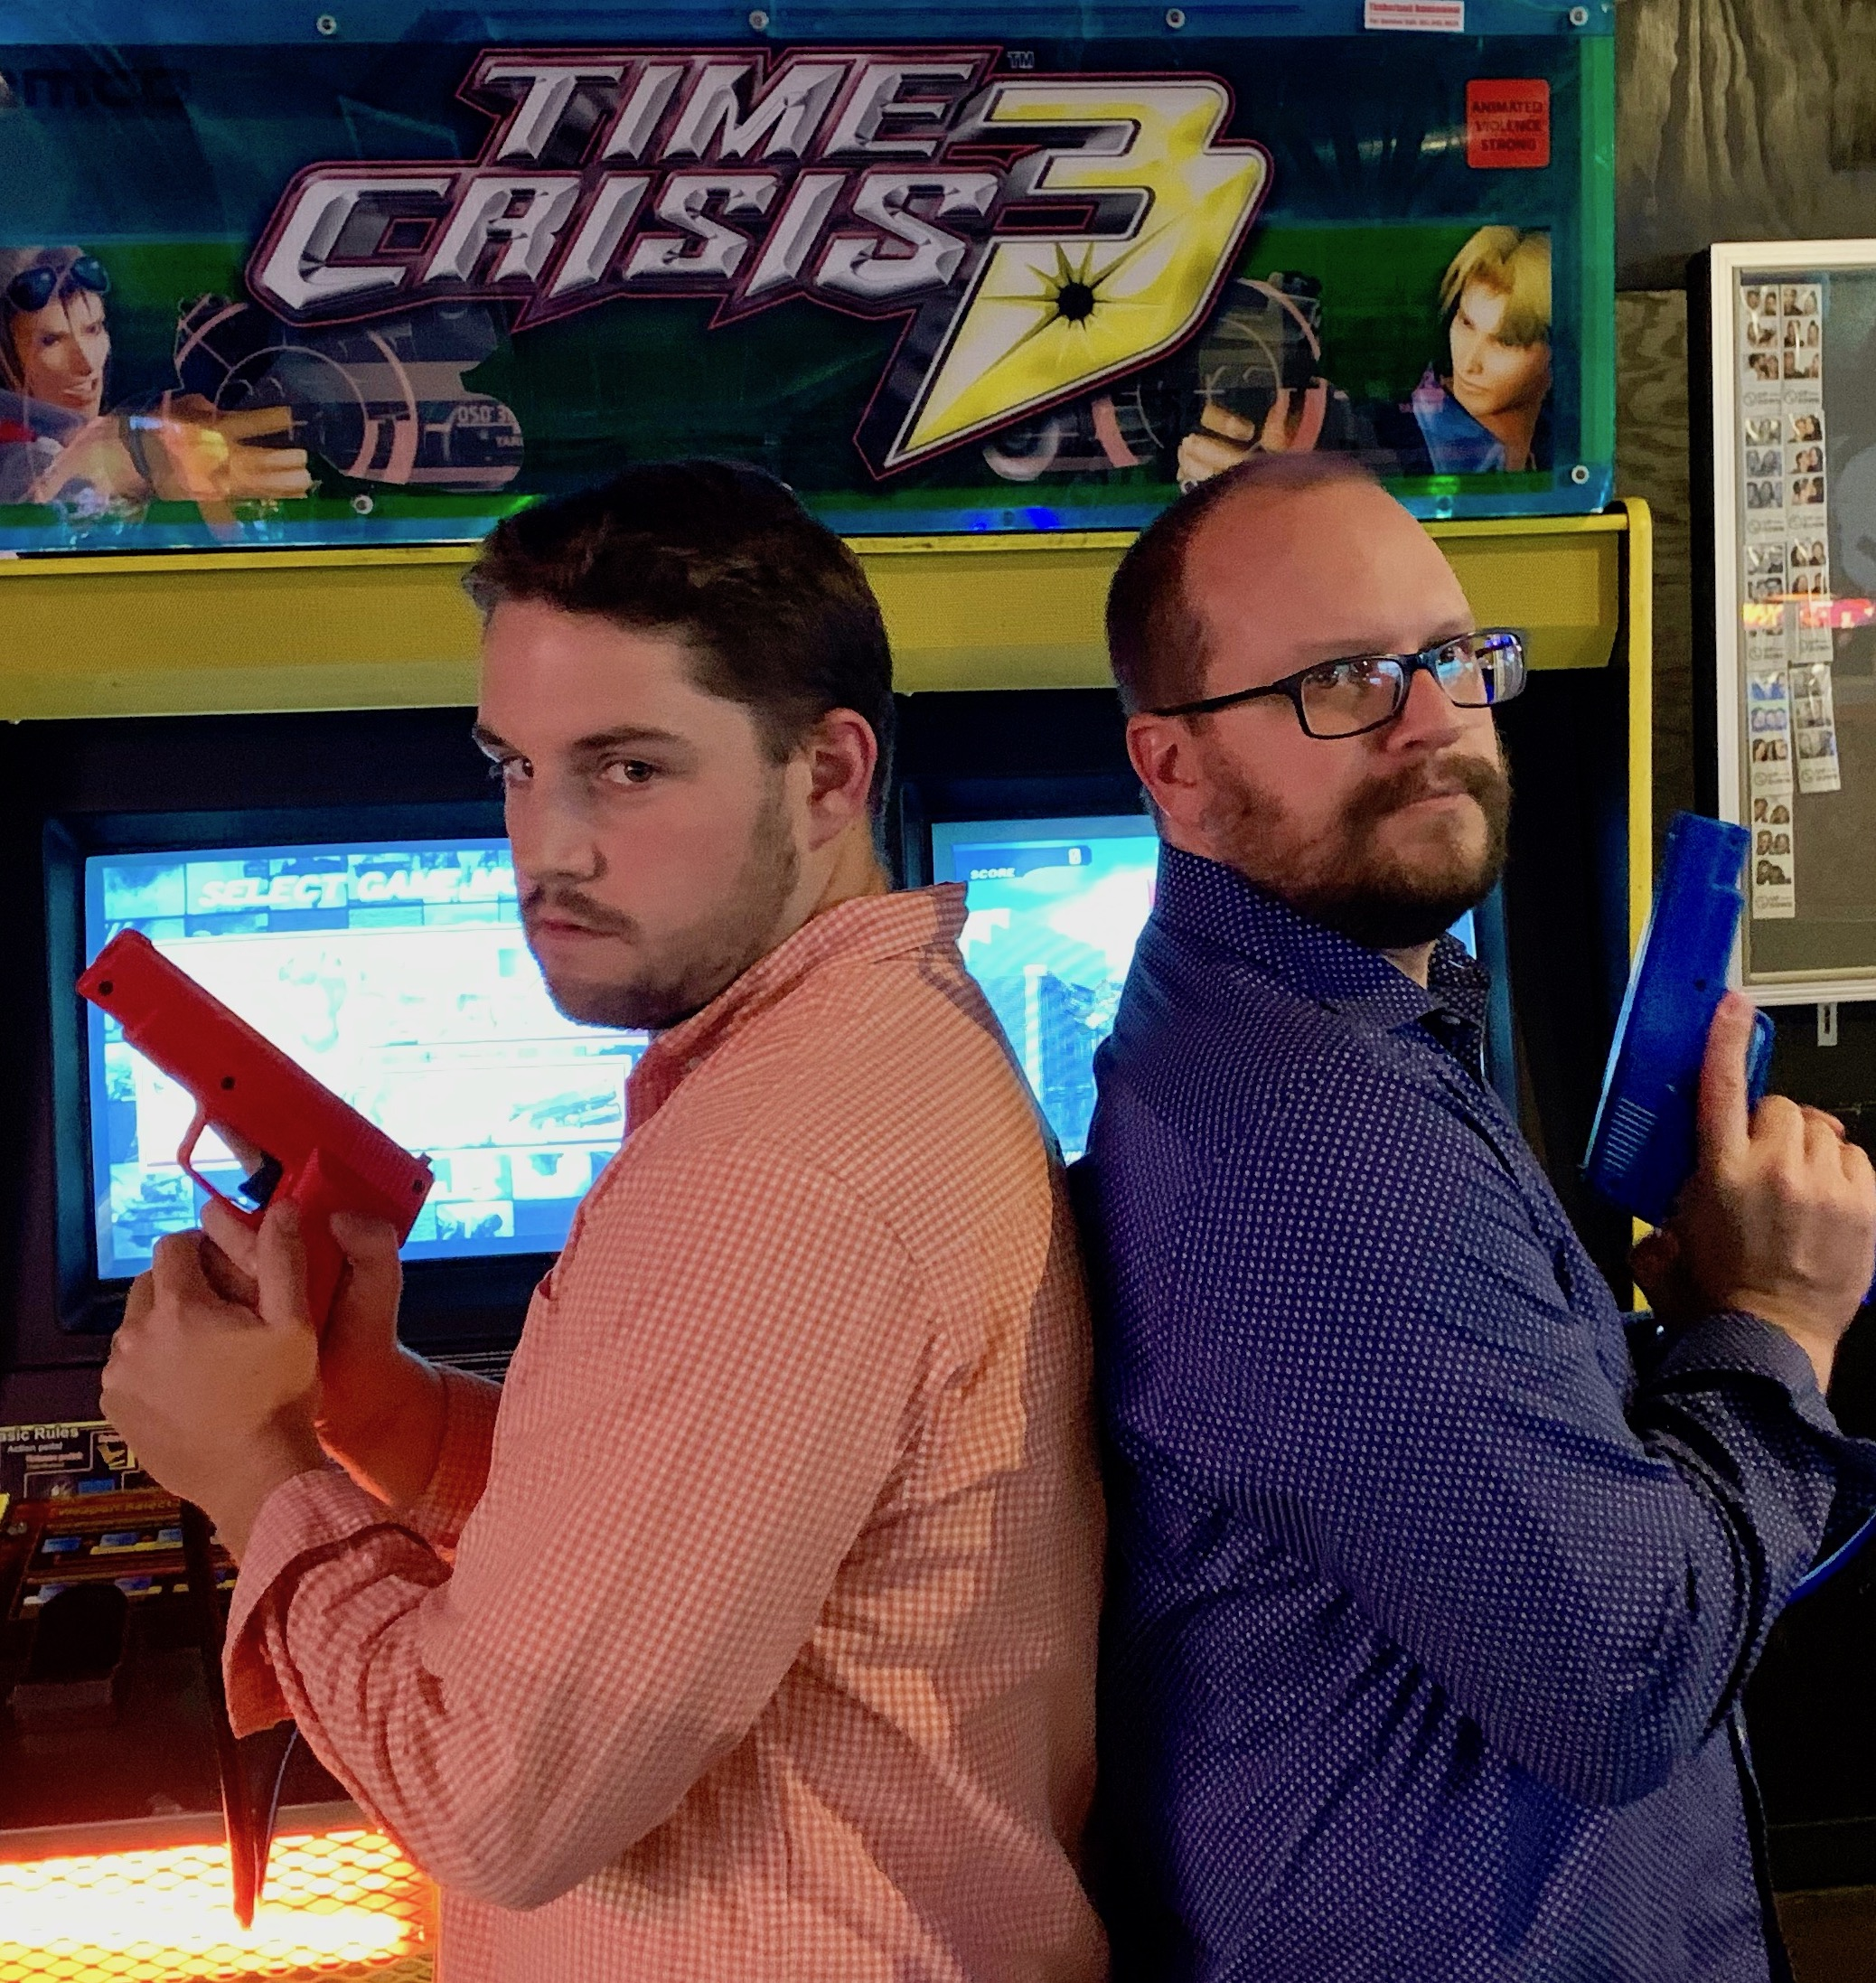 Handsome echogear employees play Time Crisis 3 at Up-Down Minneapolis